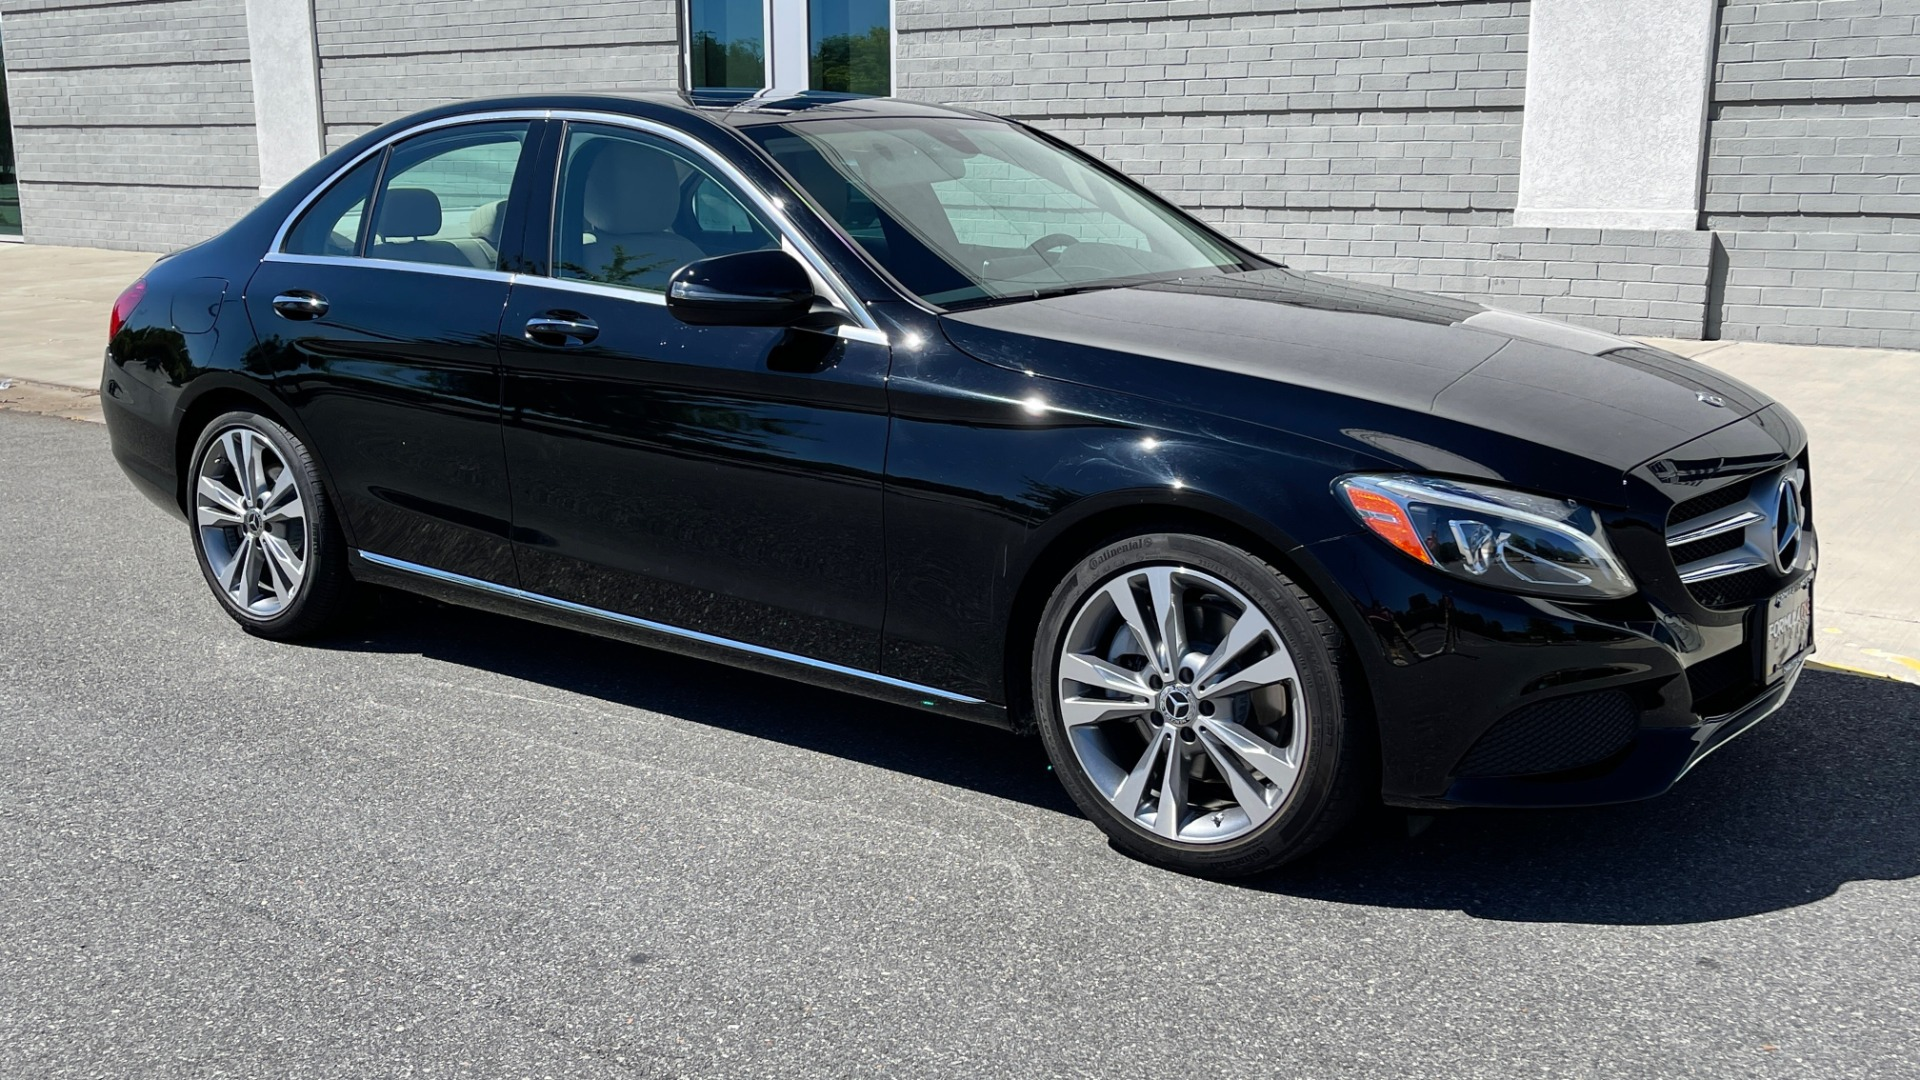 Used 2018 Mercedes-Benz C-CLASS C 300 PREMIUM / APPLE CARPLAY / SUNROOF / REARVIEW for sale $31,995 at Formula Imports in Charlotte NC 28227 6